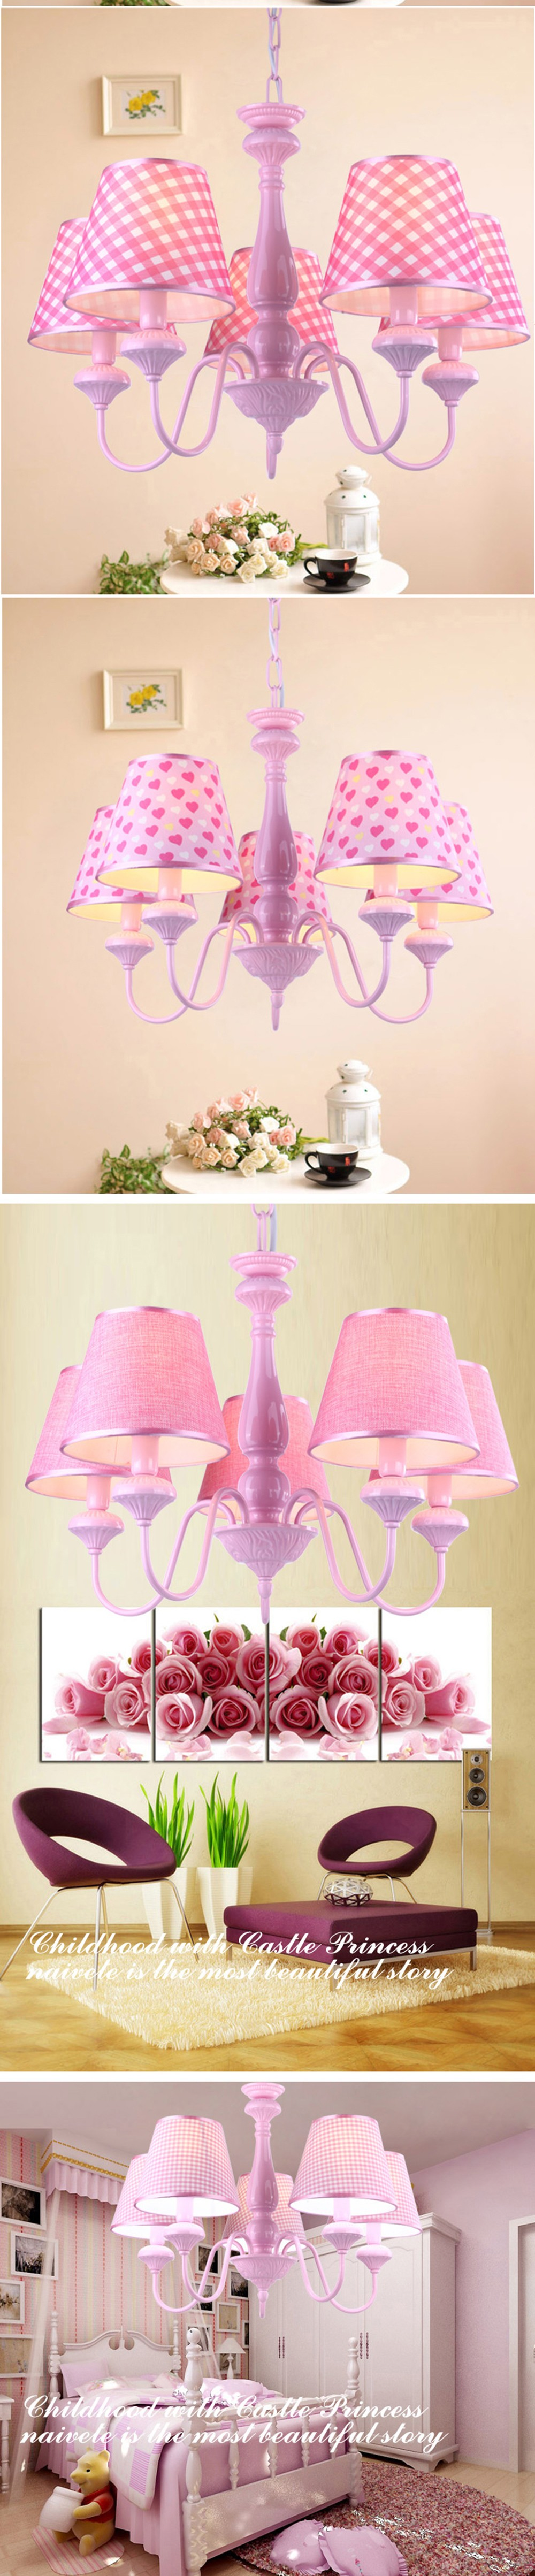 Children s book room chandelier bedroom chandelier child girl pink